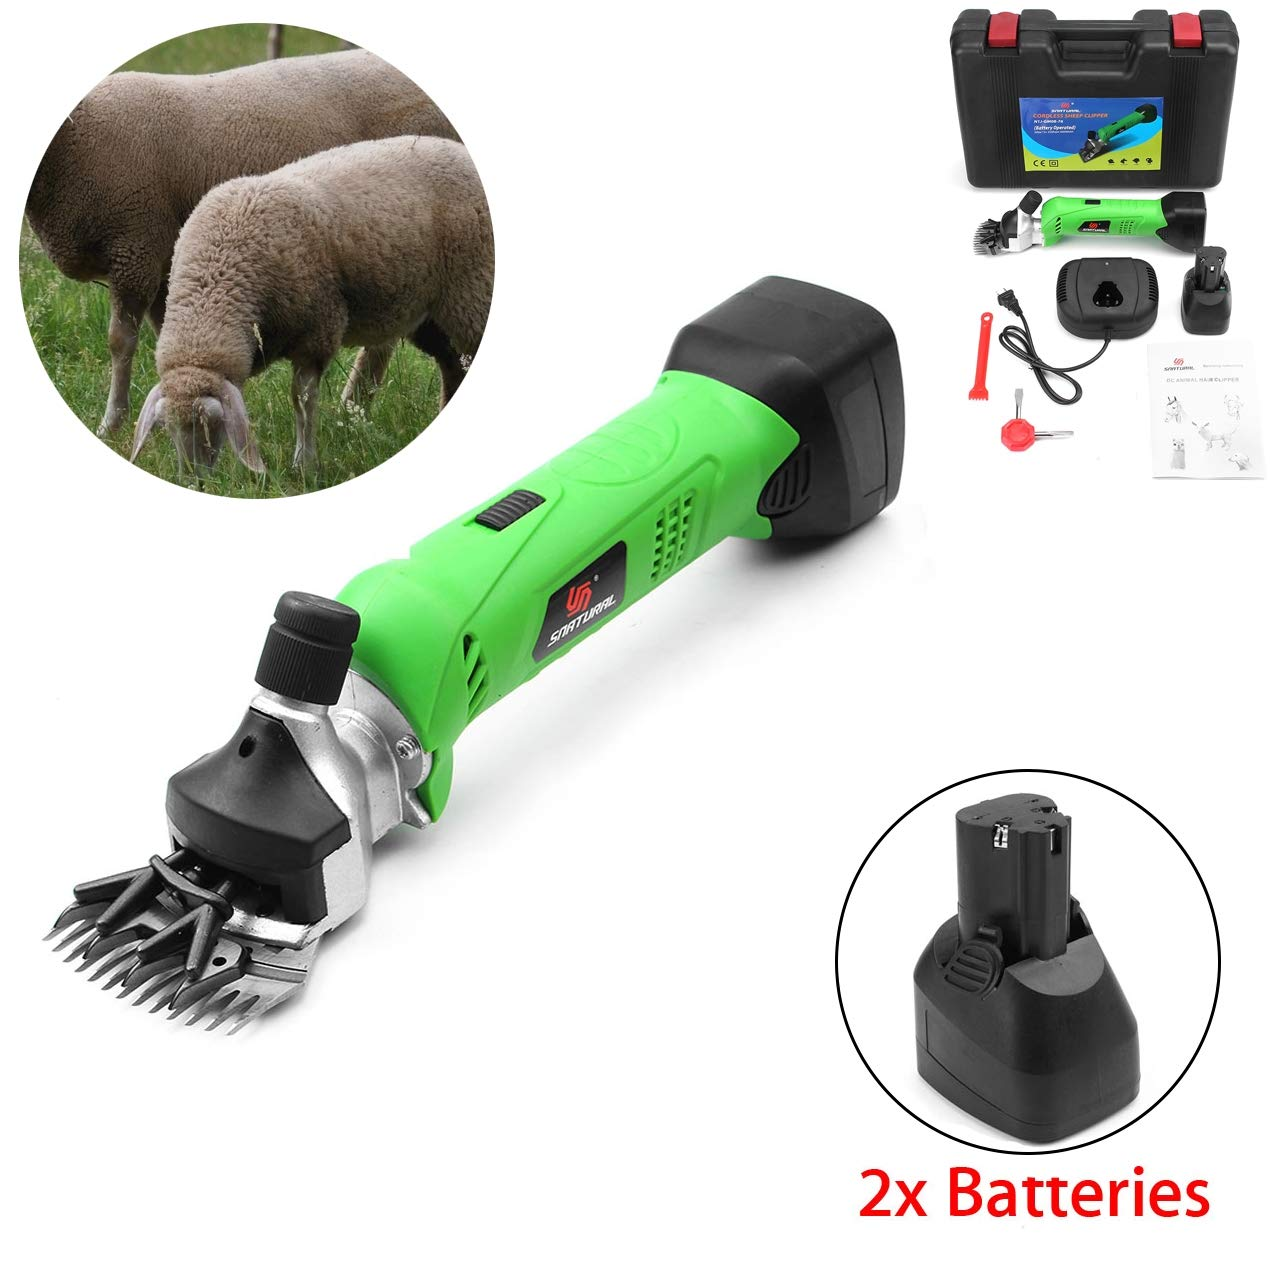 Green 12V Cordless Electric Shearing Clipper 200W Wool Electric Sheep Shearing for Farm Livestock Pet Supplies Grooming